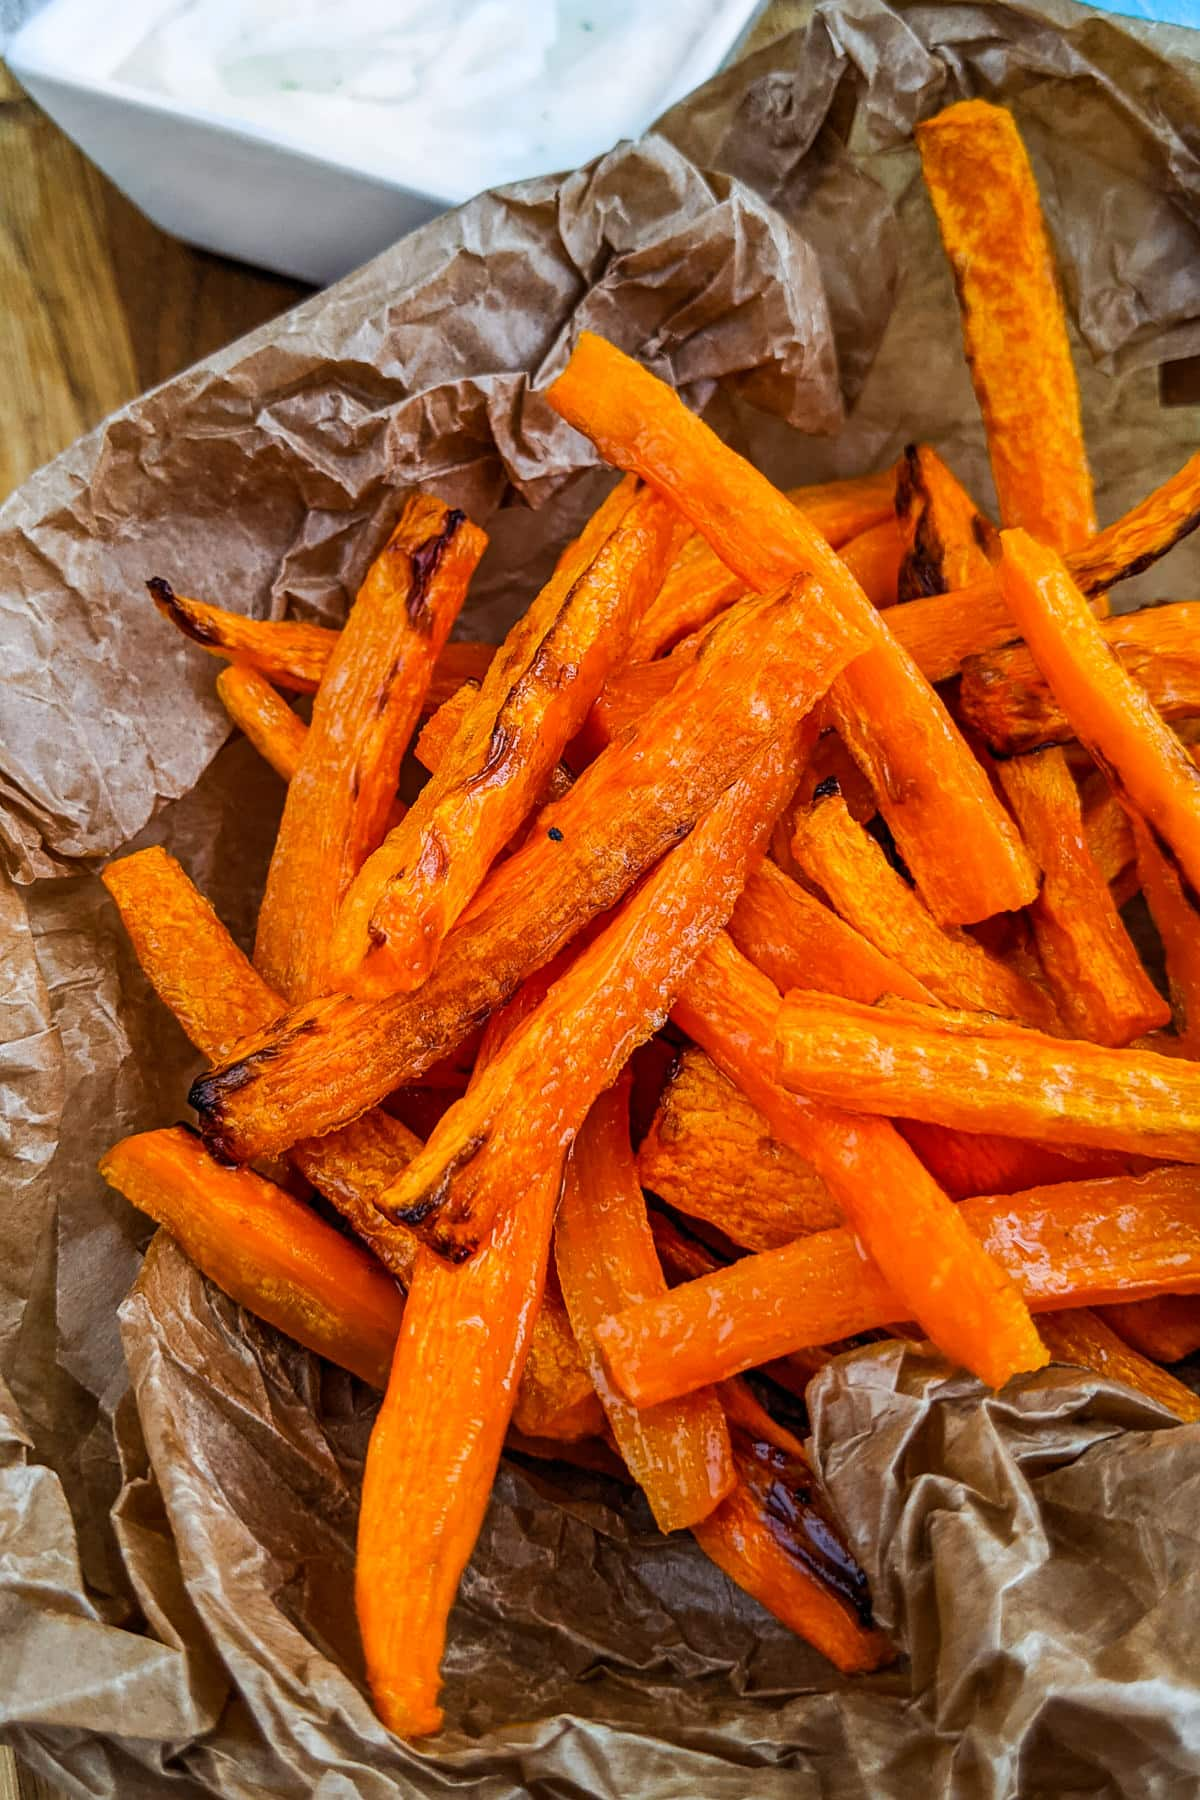 Carrot fries served on a parchment paper.